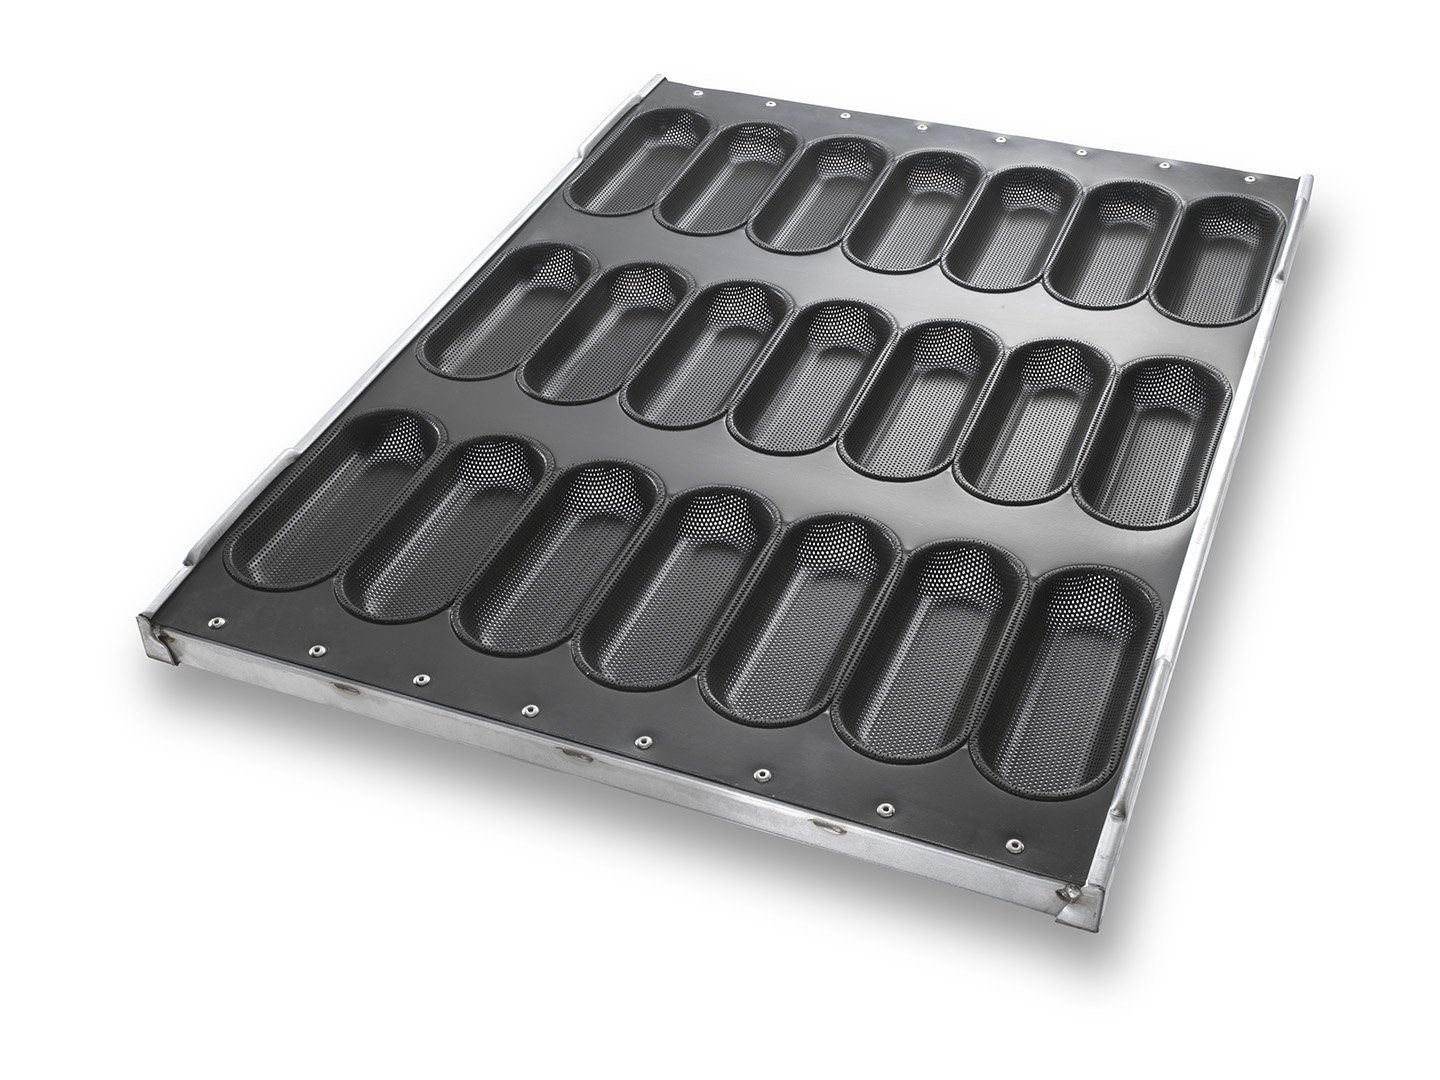 Sandwich Bun Pan with Perforated Moulds in Stackable Frame – DuraShield® Coating